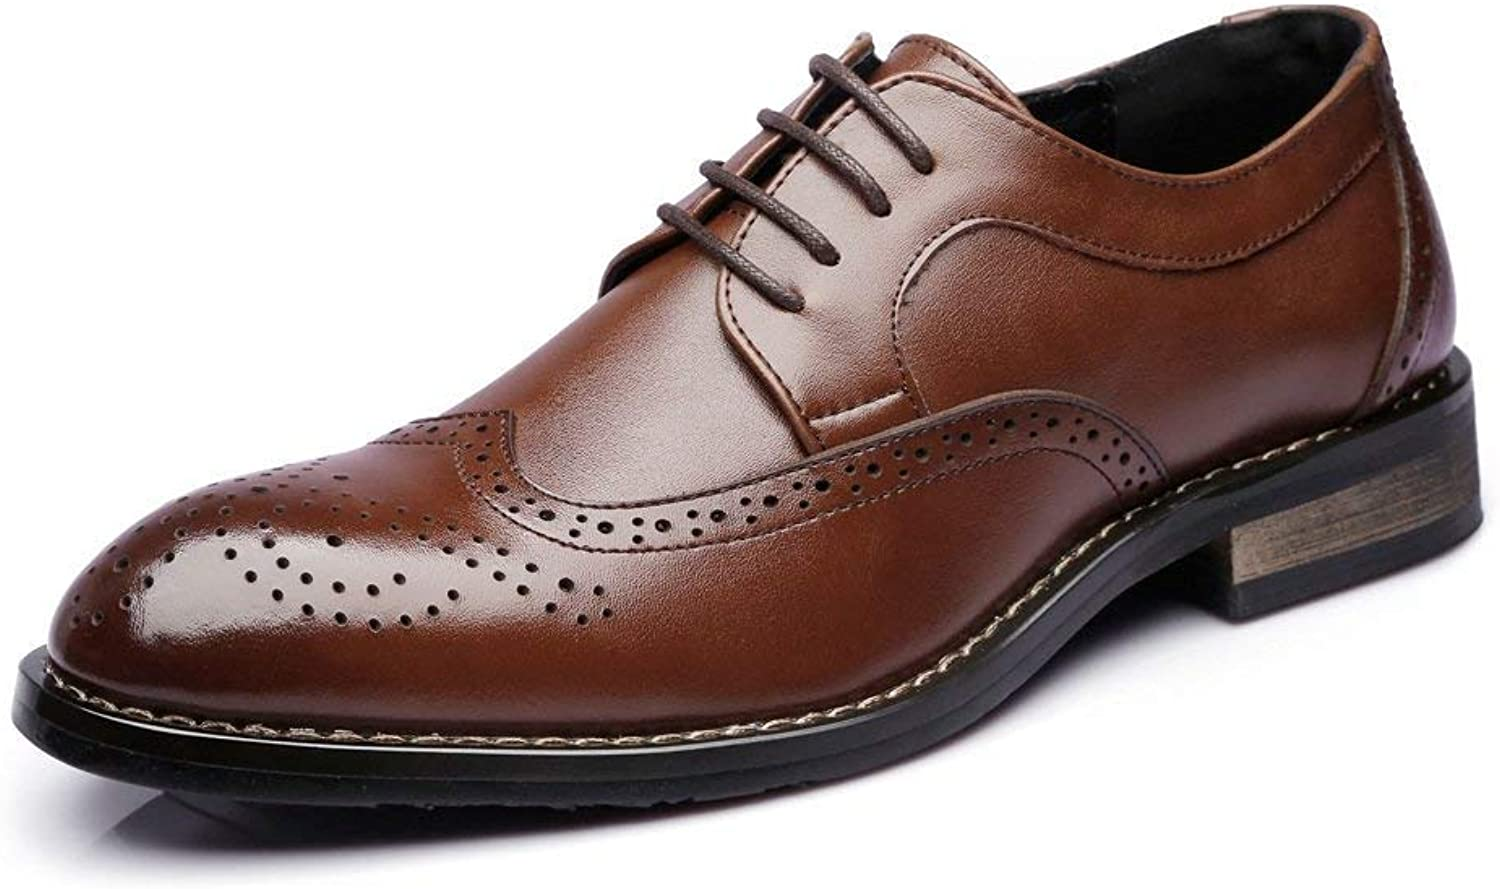 Oudan 2018 Men Low Top Business shoes Matte Hollow Carving Genuine Leather Lace up Breathed Padded Oxfords (color  Brown, Size  46 EU) (color   Brown, Size   41 EU)